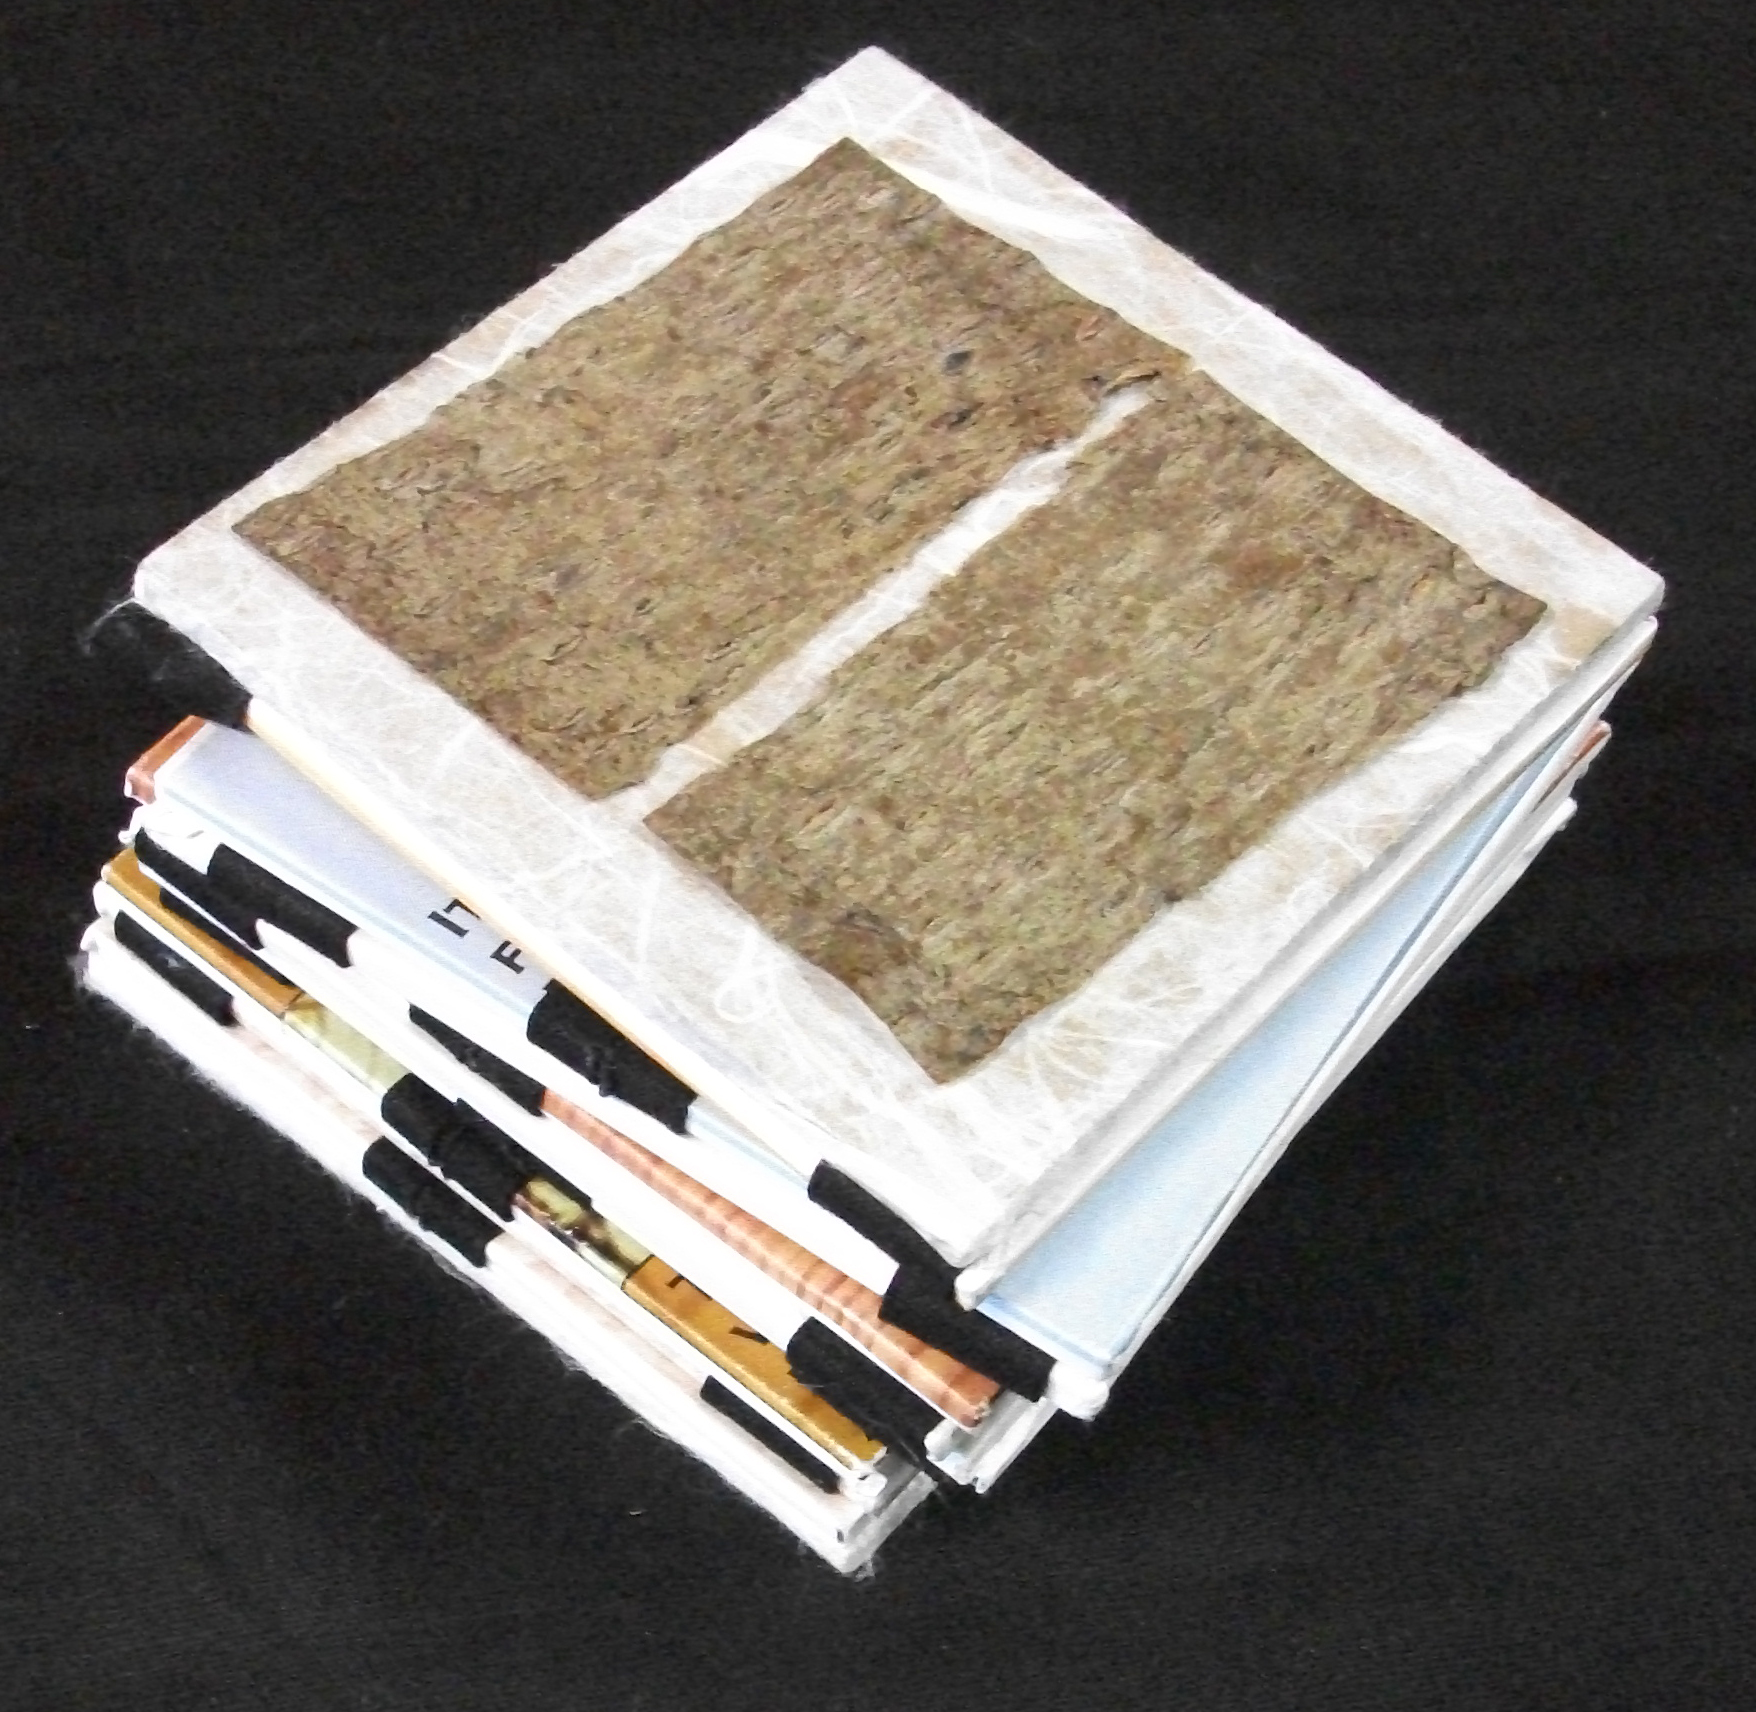 Nancy Patrick Young,  The History of Paper,  Jacob's Ladder Form, Seam Binding, Book Board, Paper, Bark, 2007, Kalamazoo, MI